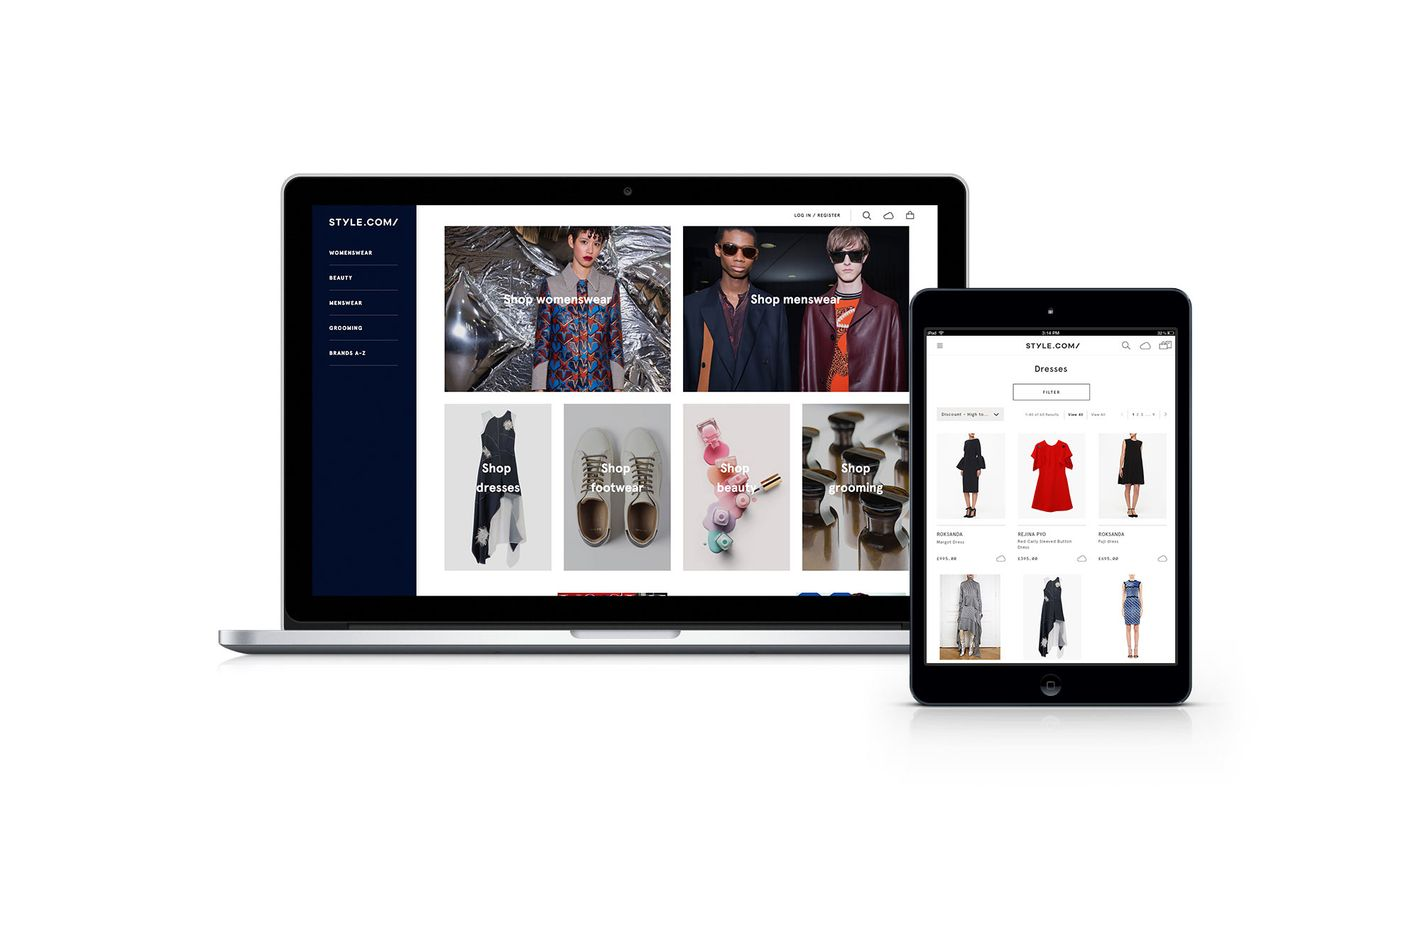 Relaunch to Style.com as an e-commerce site